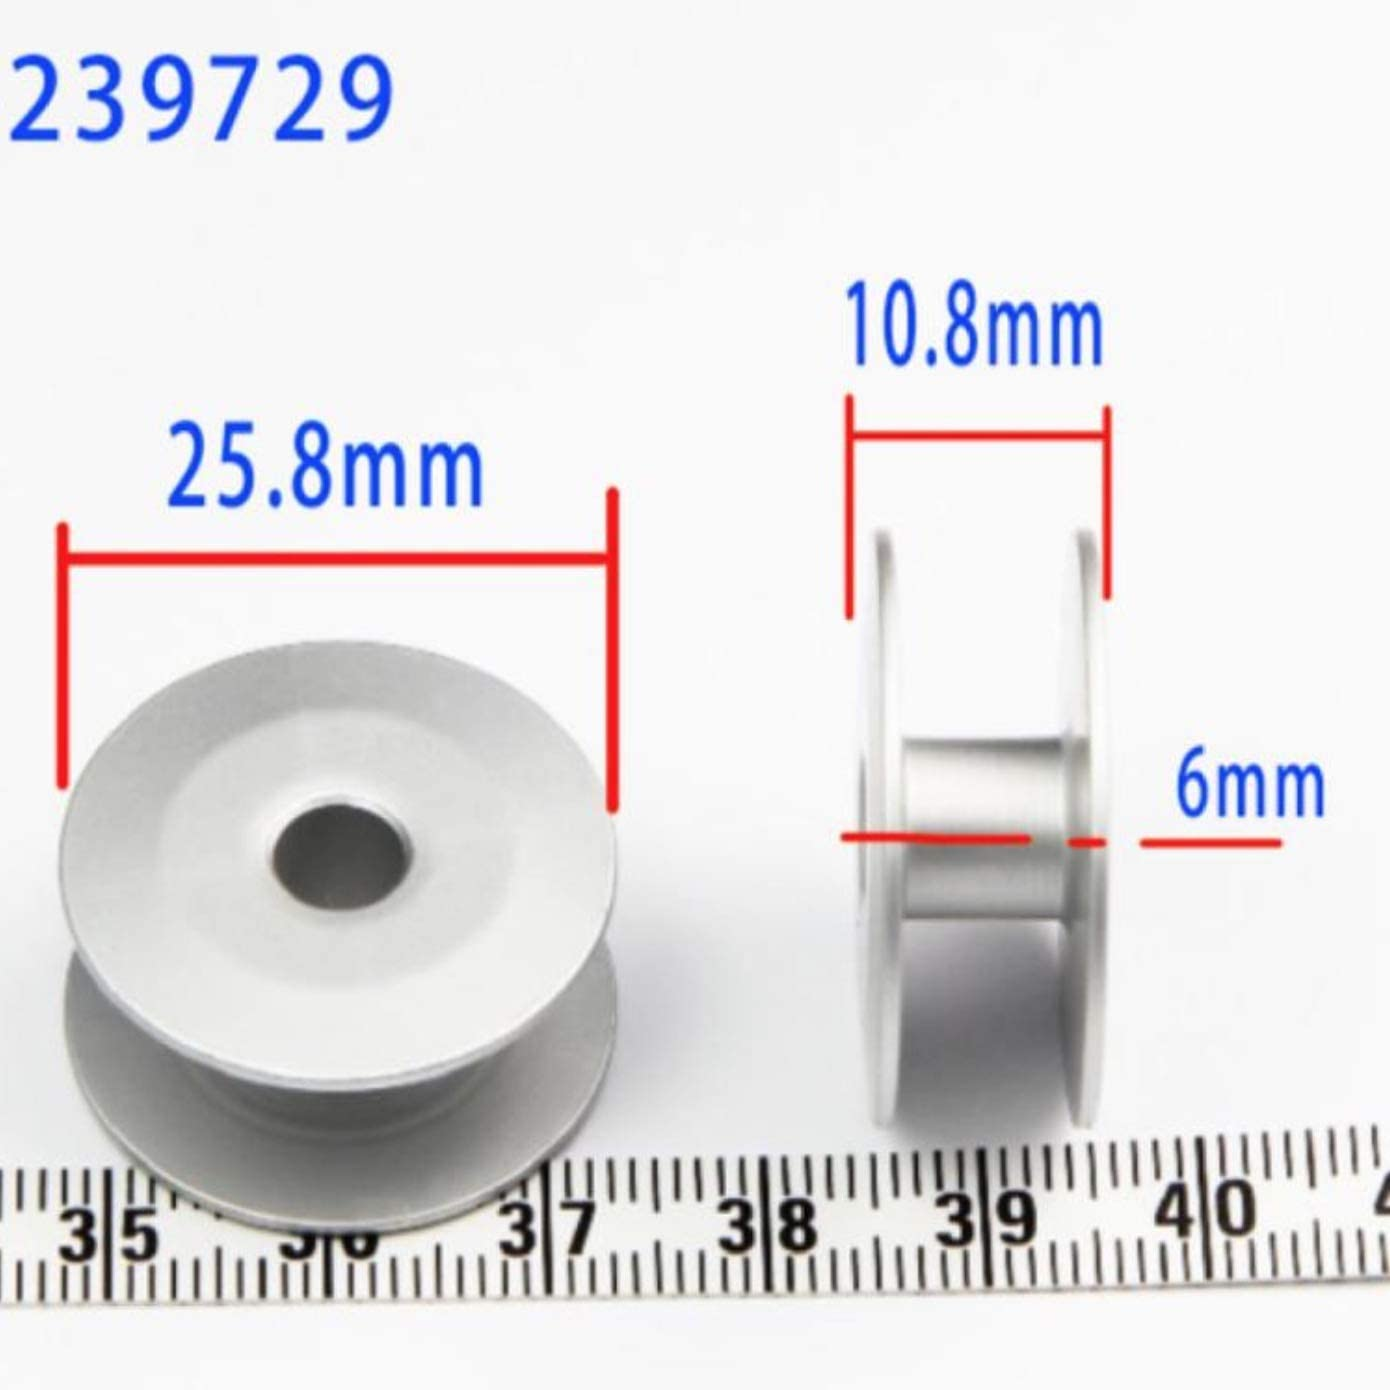 100 PCS BO-239729 BOBBINS Used for GC0302, GC6-5, GC6-7 Sewing Machine and Embroidery Machine